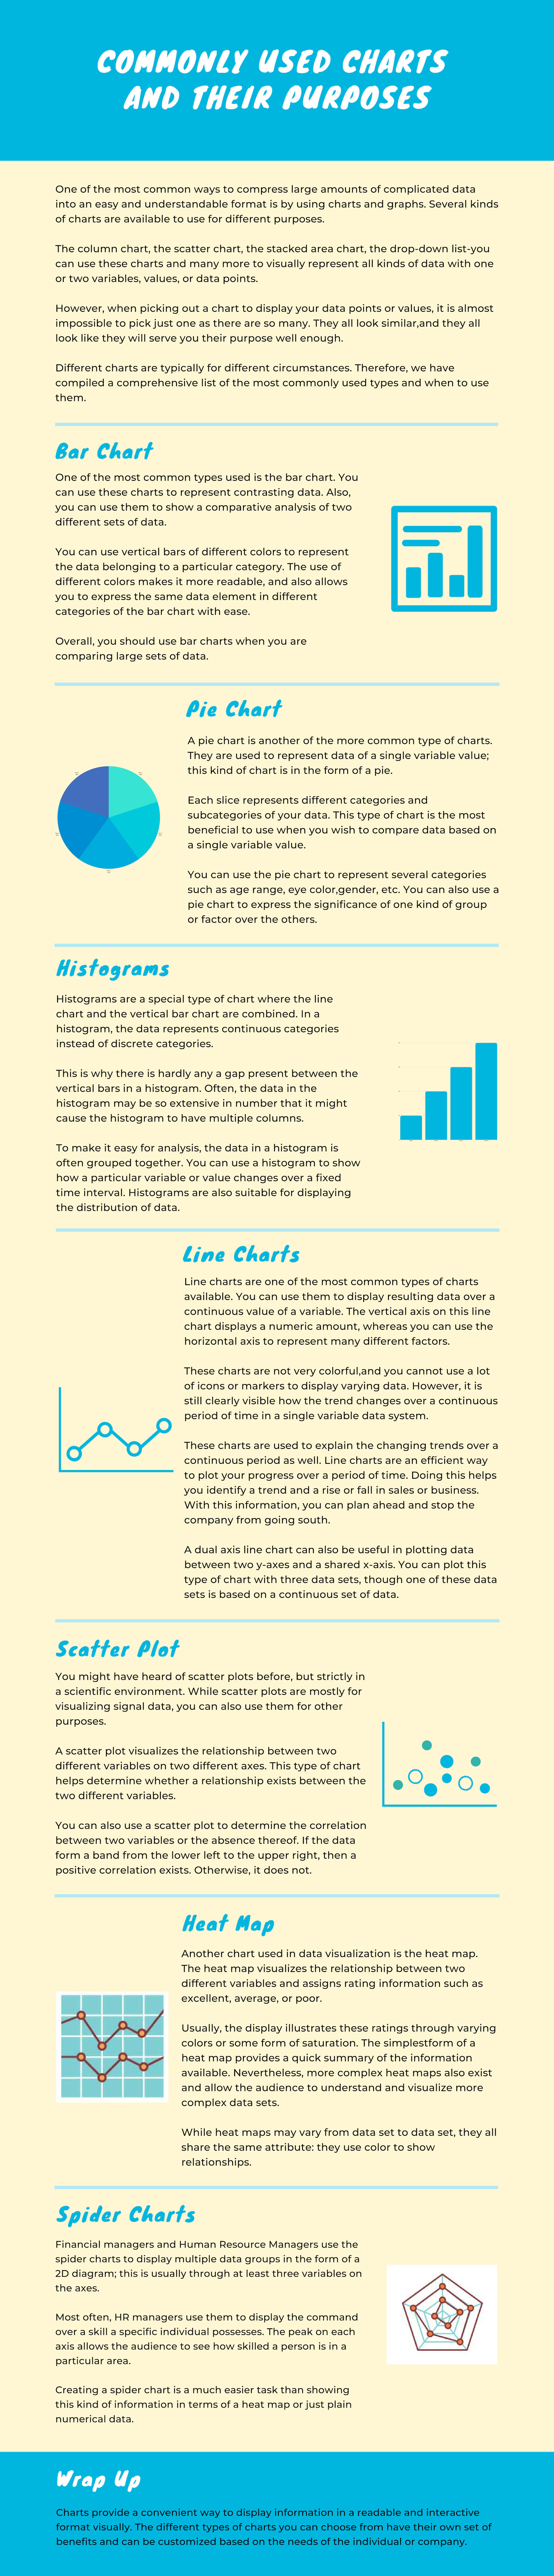 Commonly Used Charts and Their Purposes